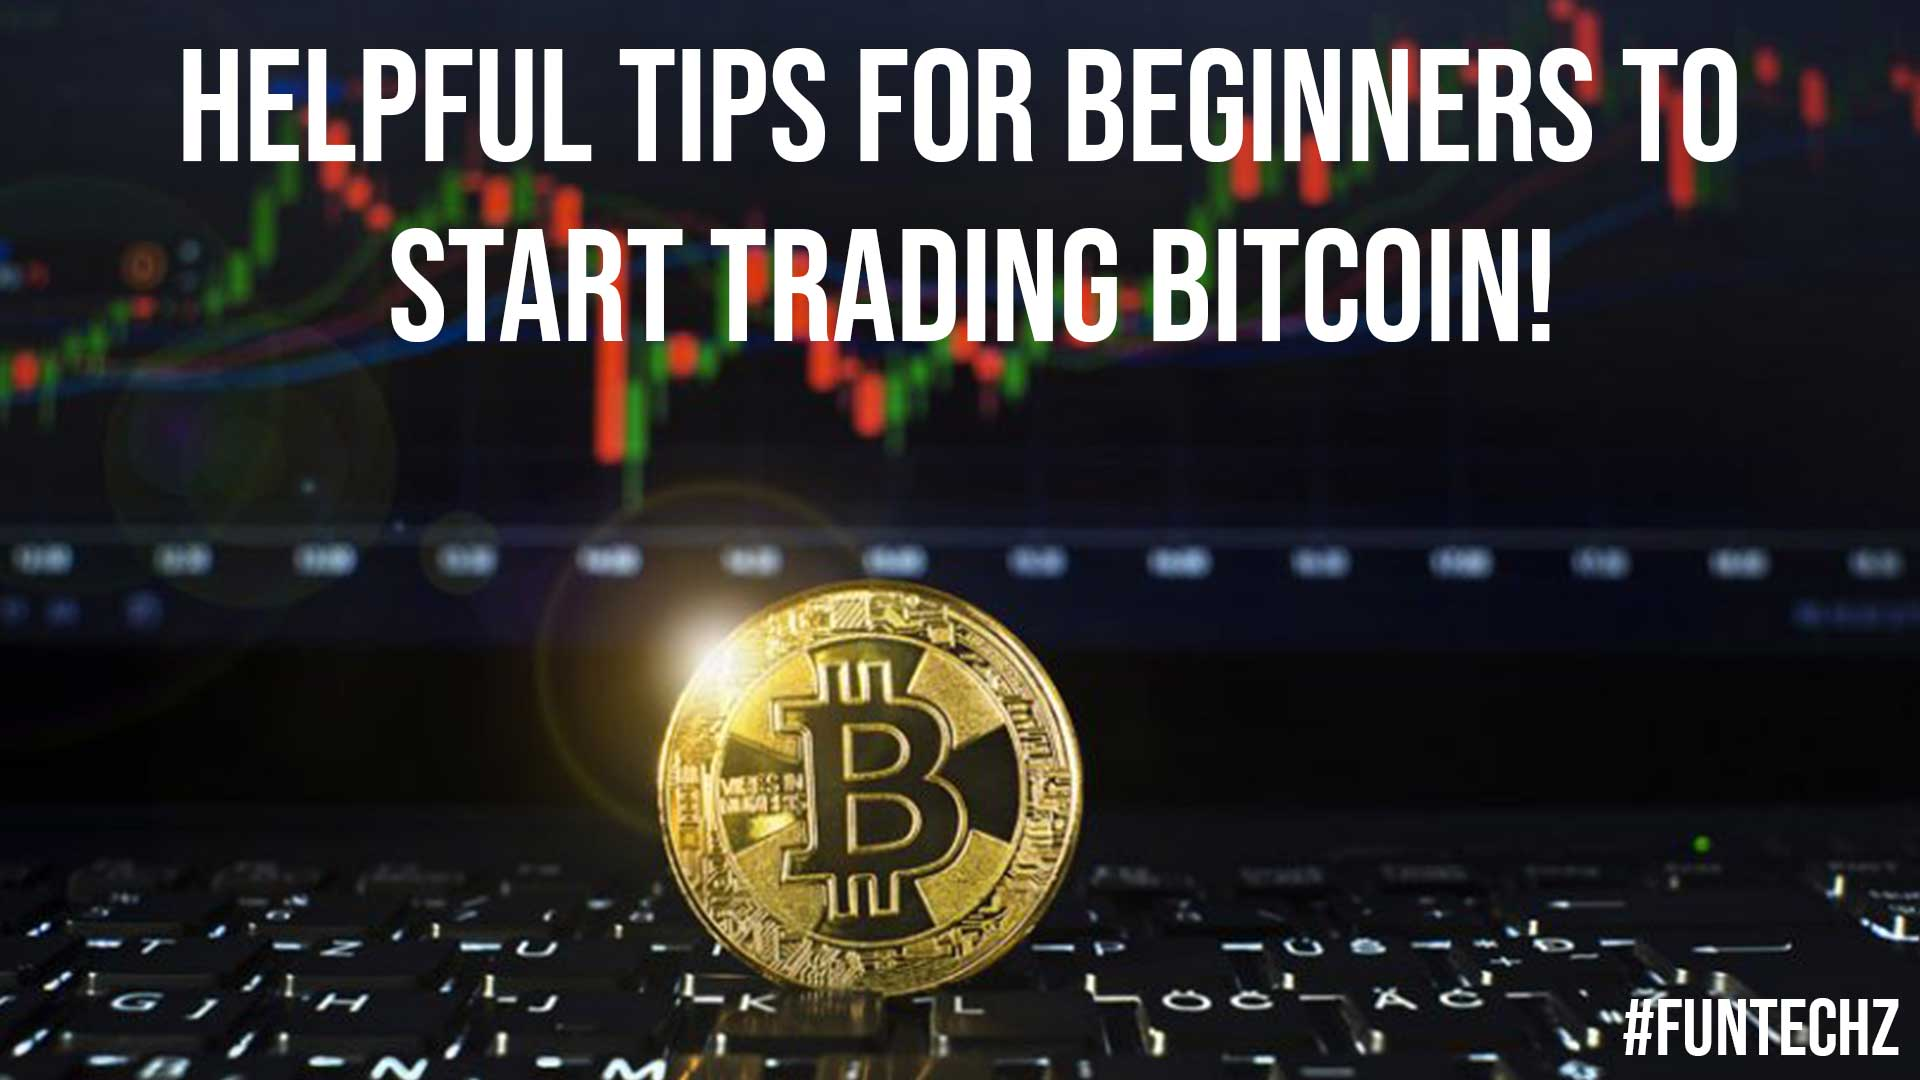 Helpful Tips for Beginners to Start Trading Bitcoin